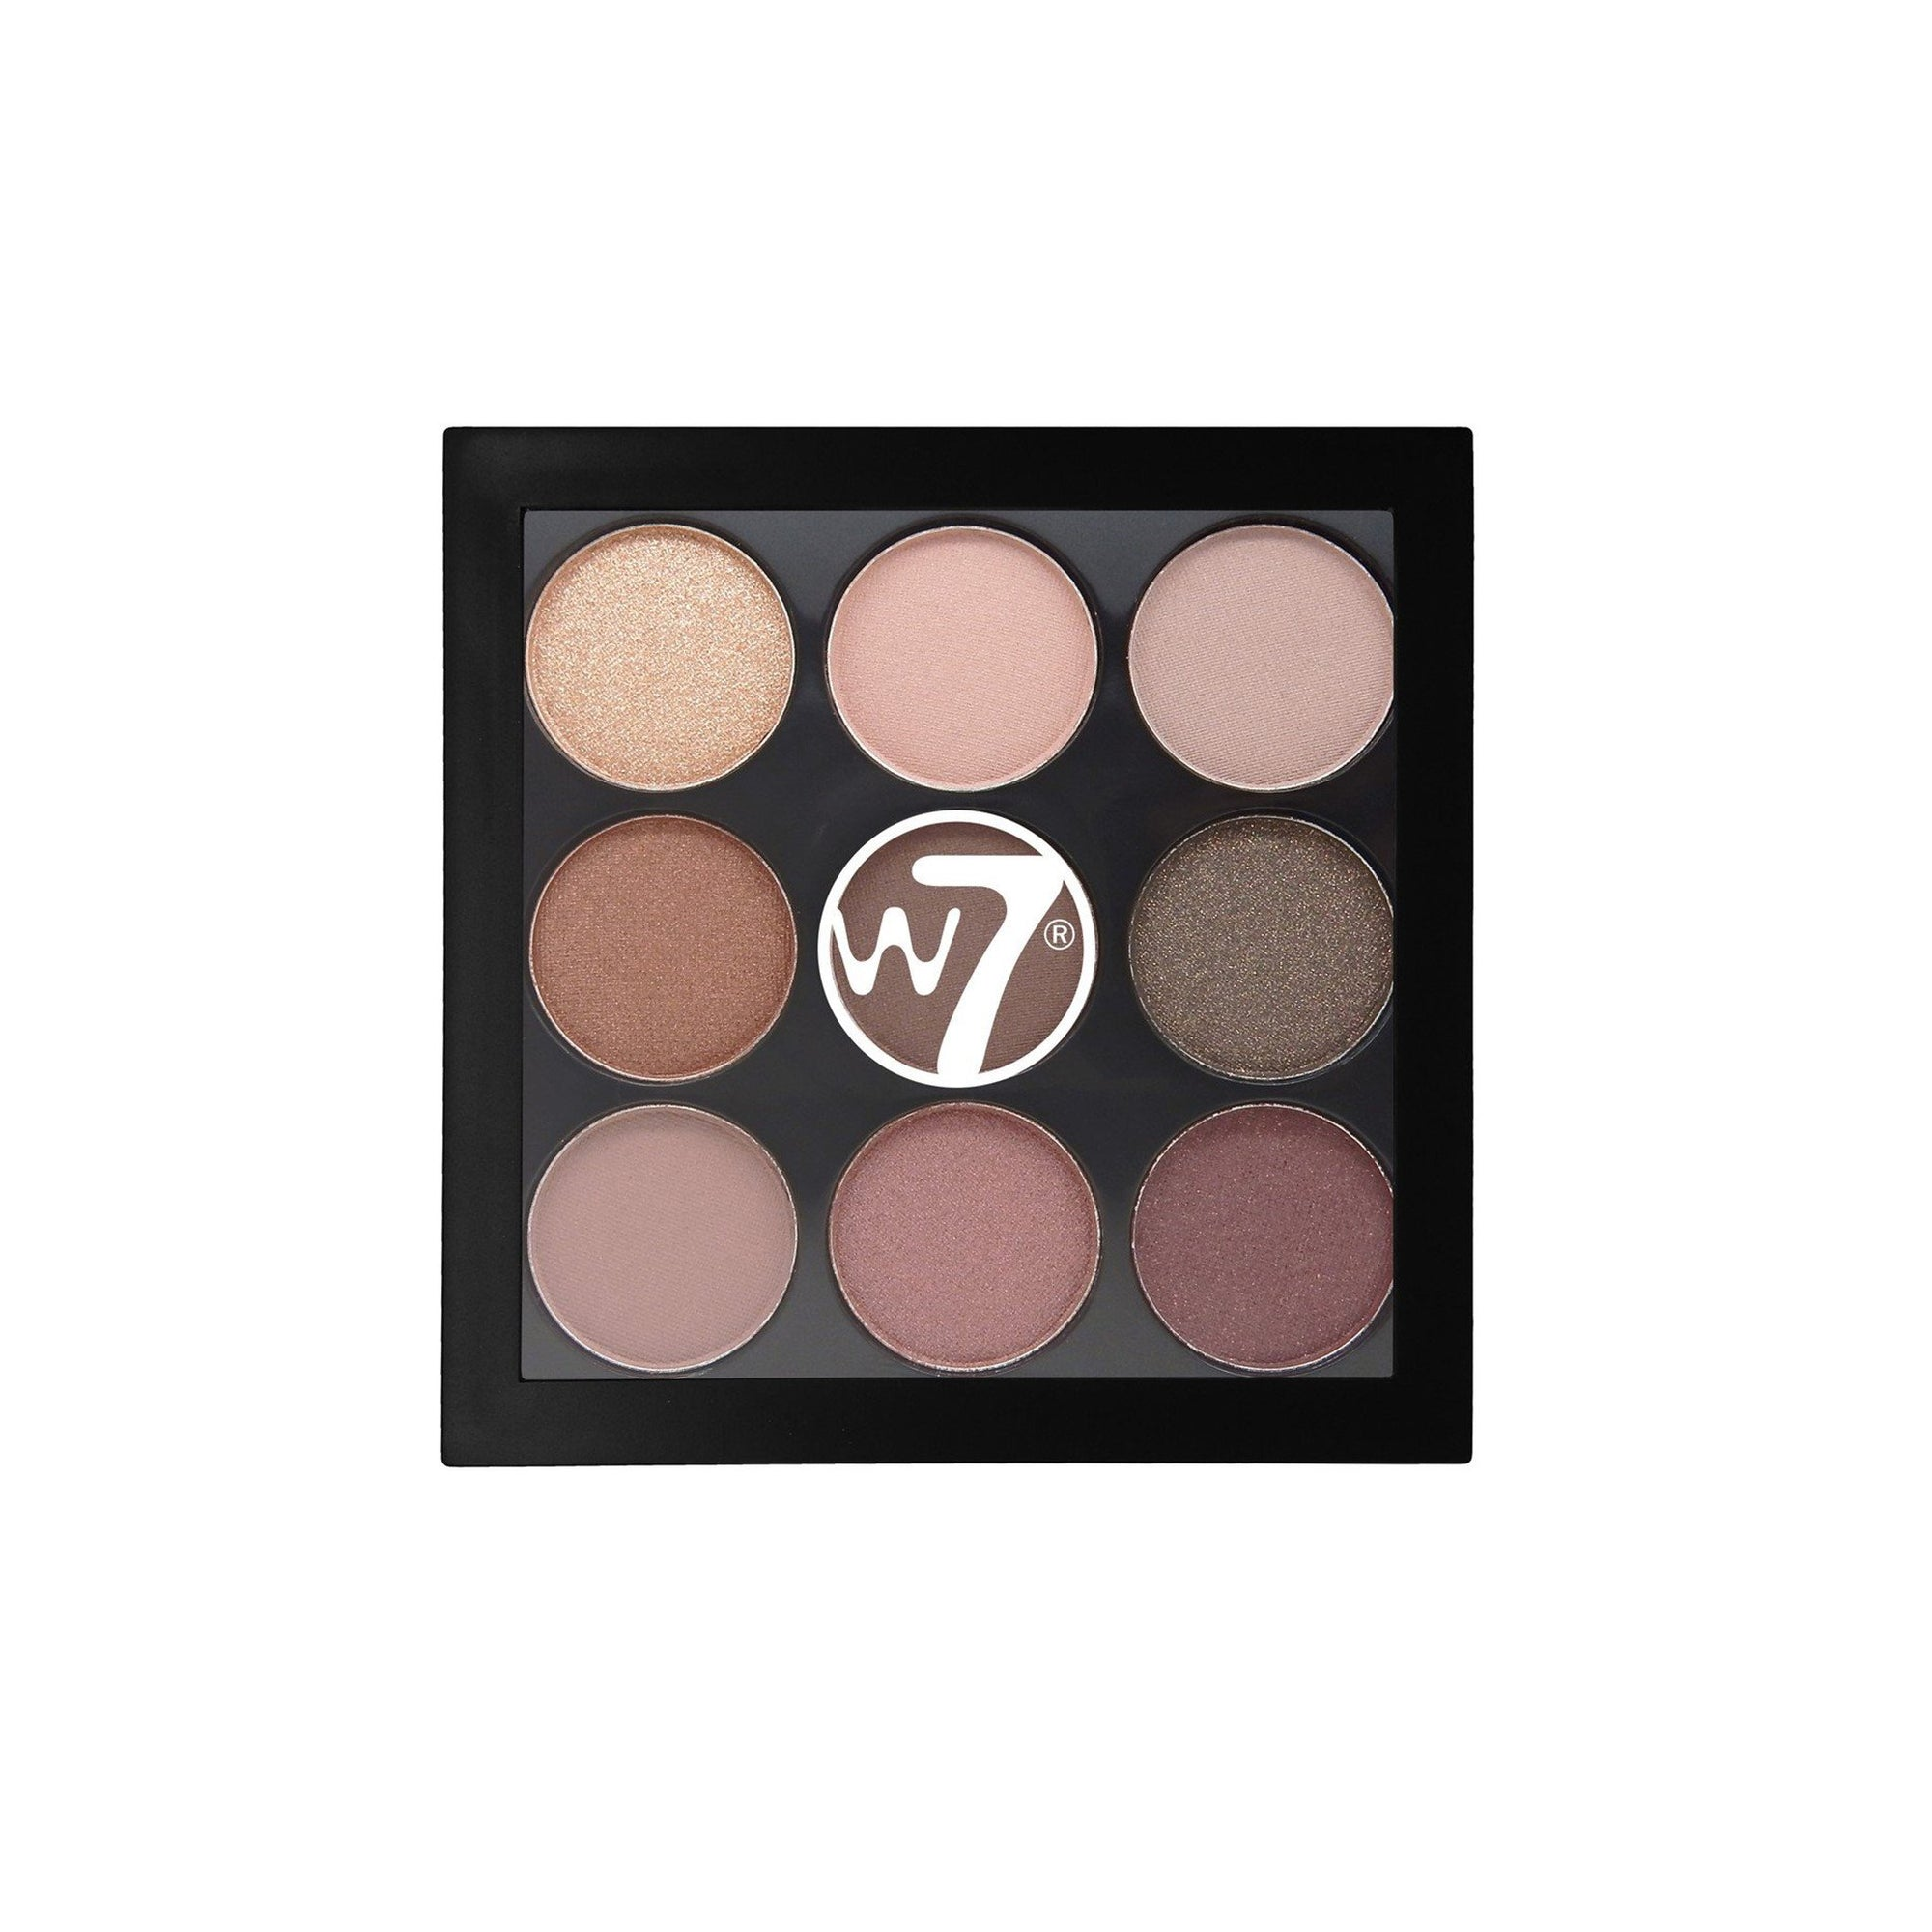 W7 Naughty Nine Eyeshadow Palette - Mid Summer Nights